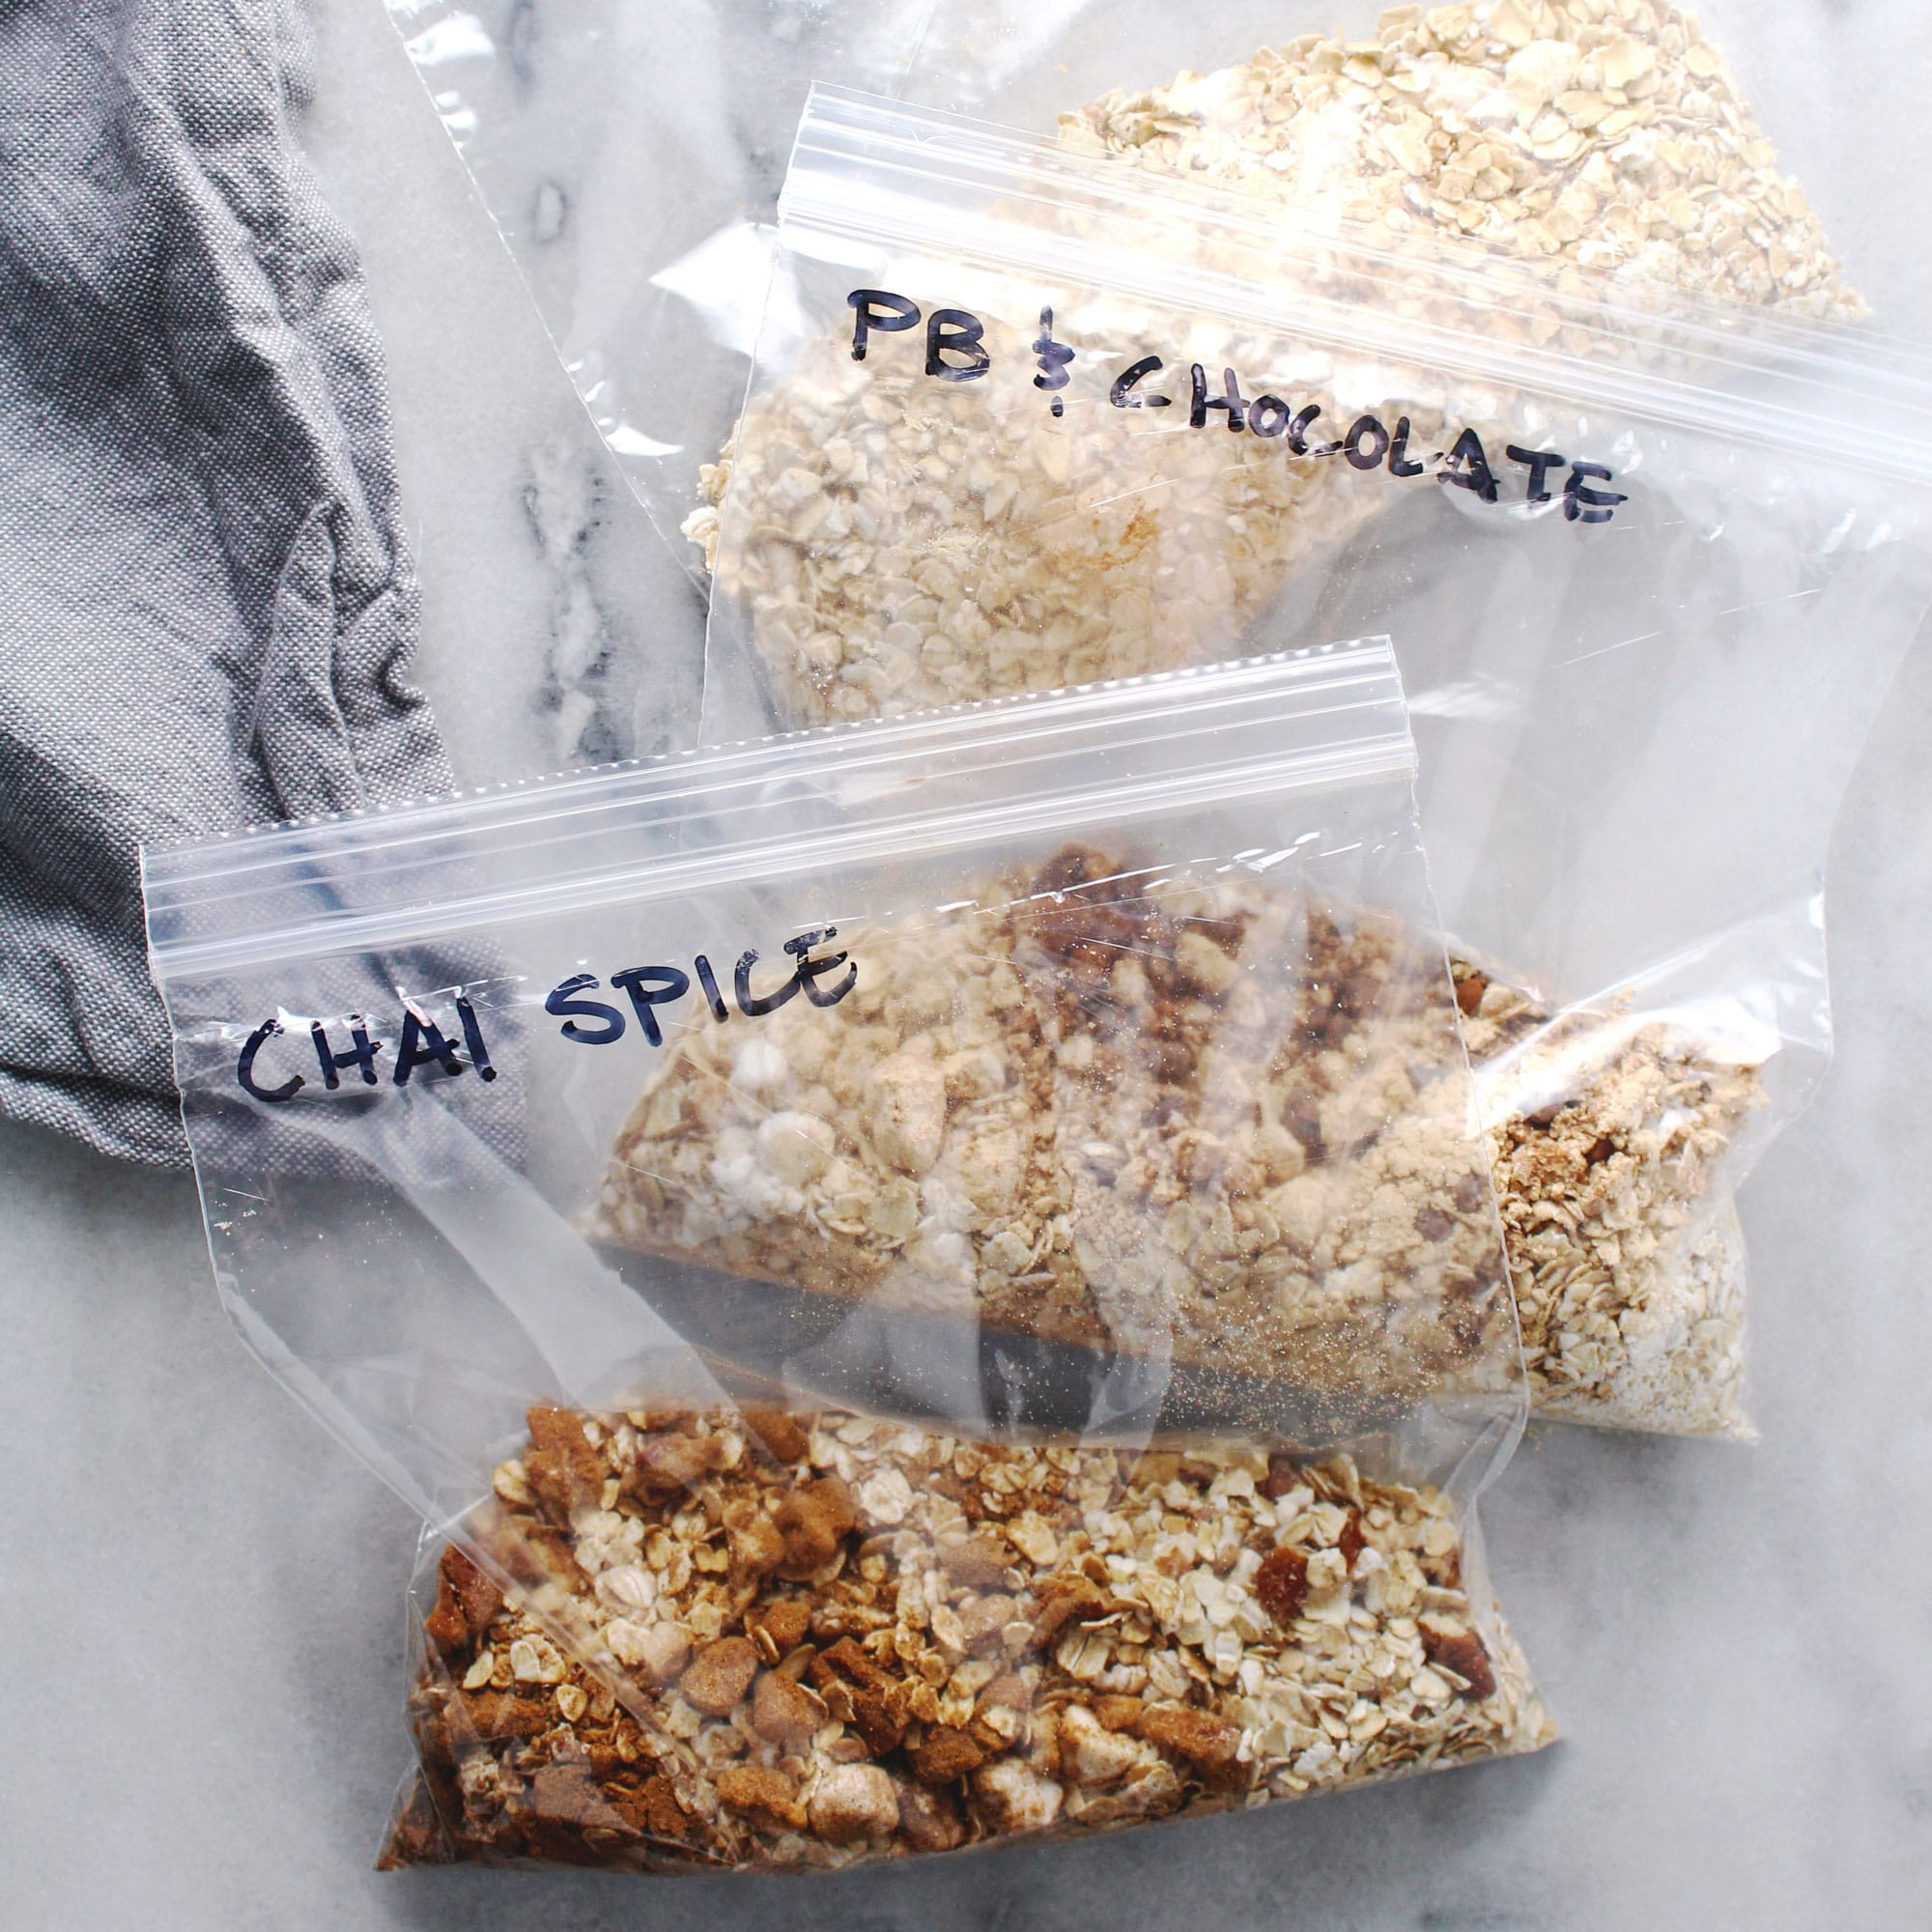 Whether you're in need of breakfast on-the-go or want to make something special for someone, these instant oatmeal packets are a nice healthy morning treat | via @AimeeMarsLiving | #Instant #Oatmeal #Packets #Homemade